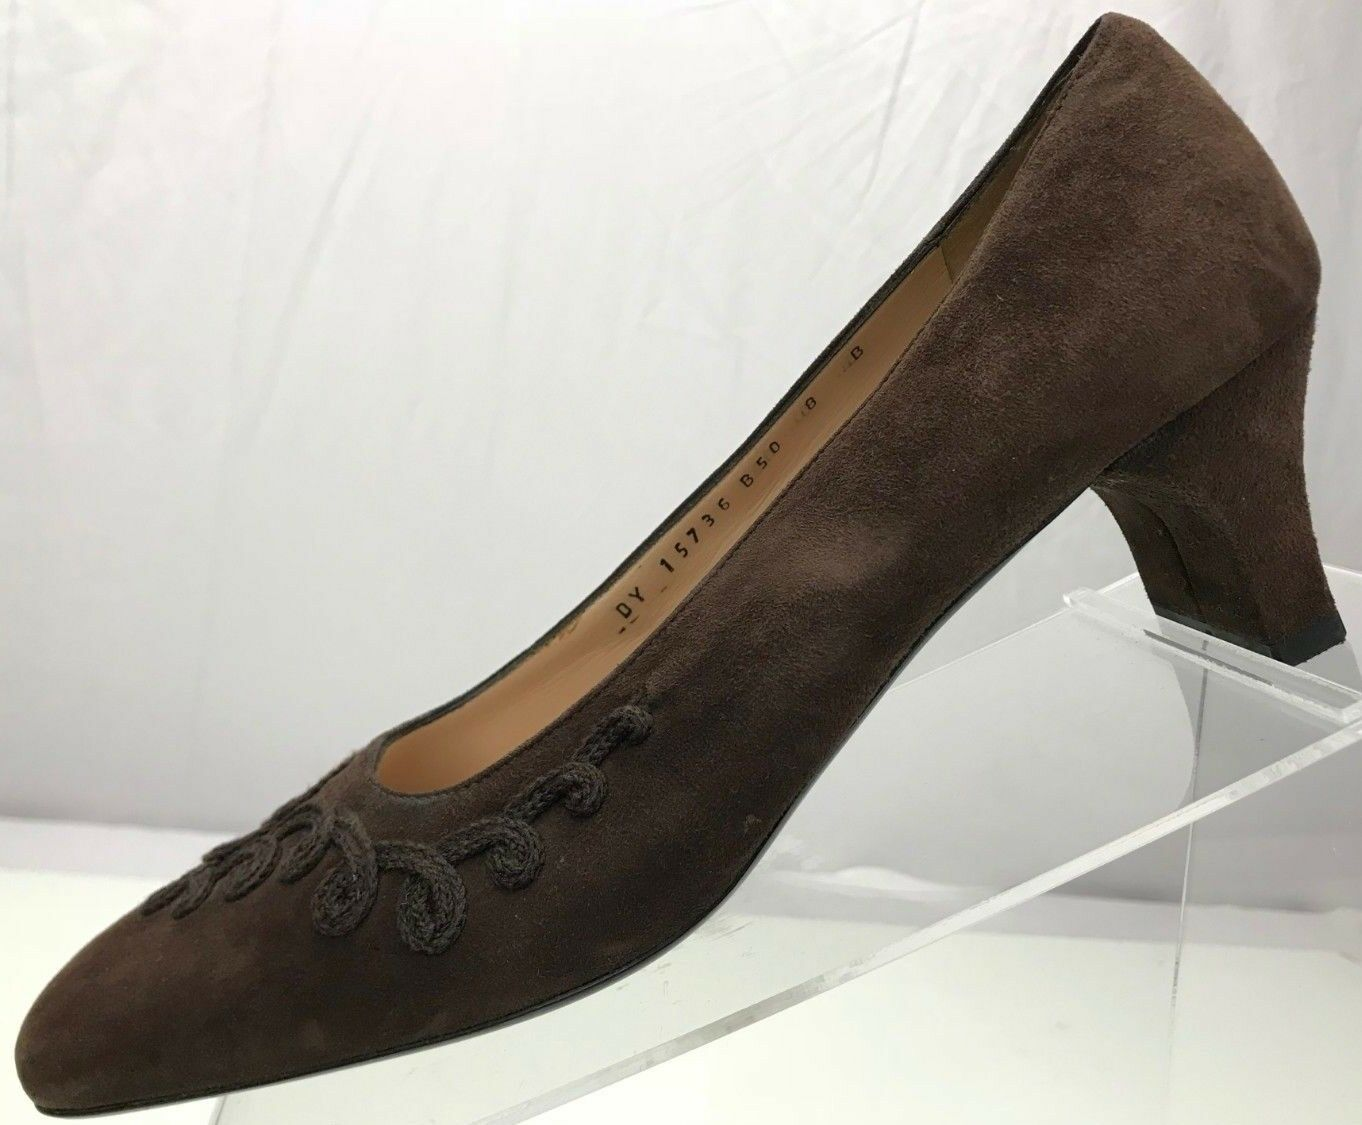 Salvatore Ferragamo Boutique Pumps- Embroidered Suede Heels  Women 8B Brown